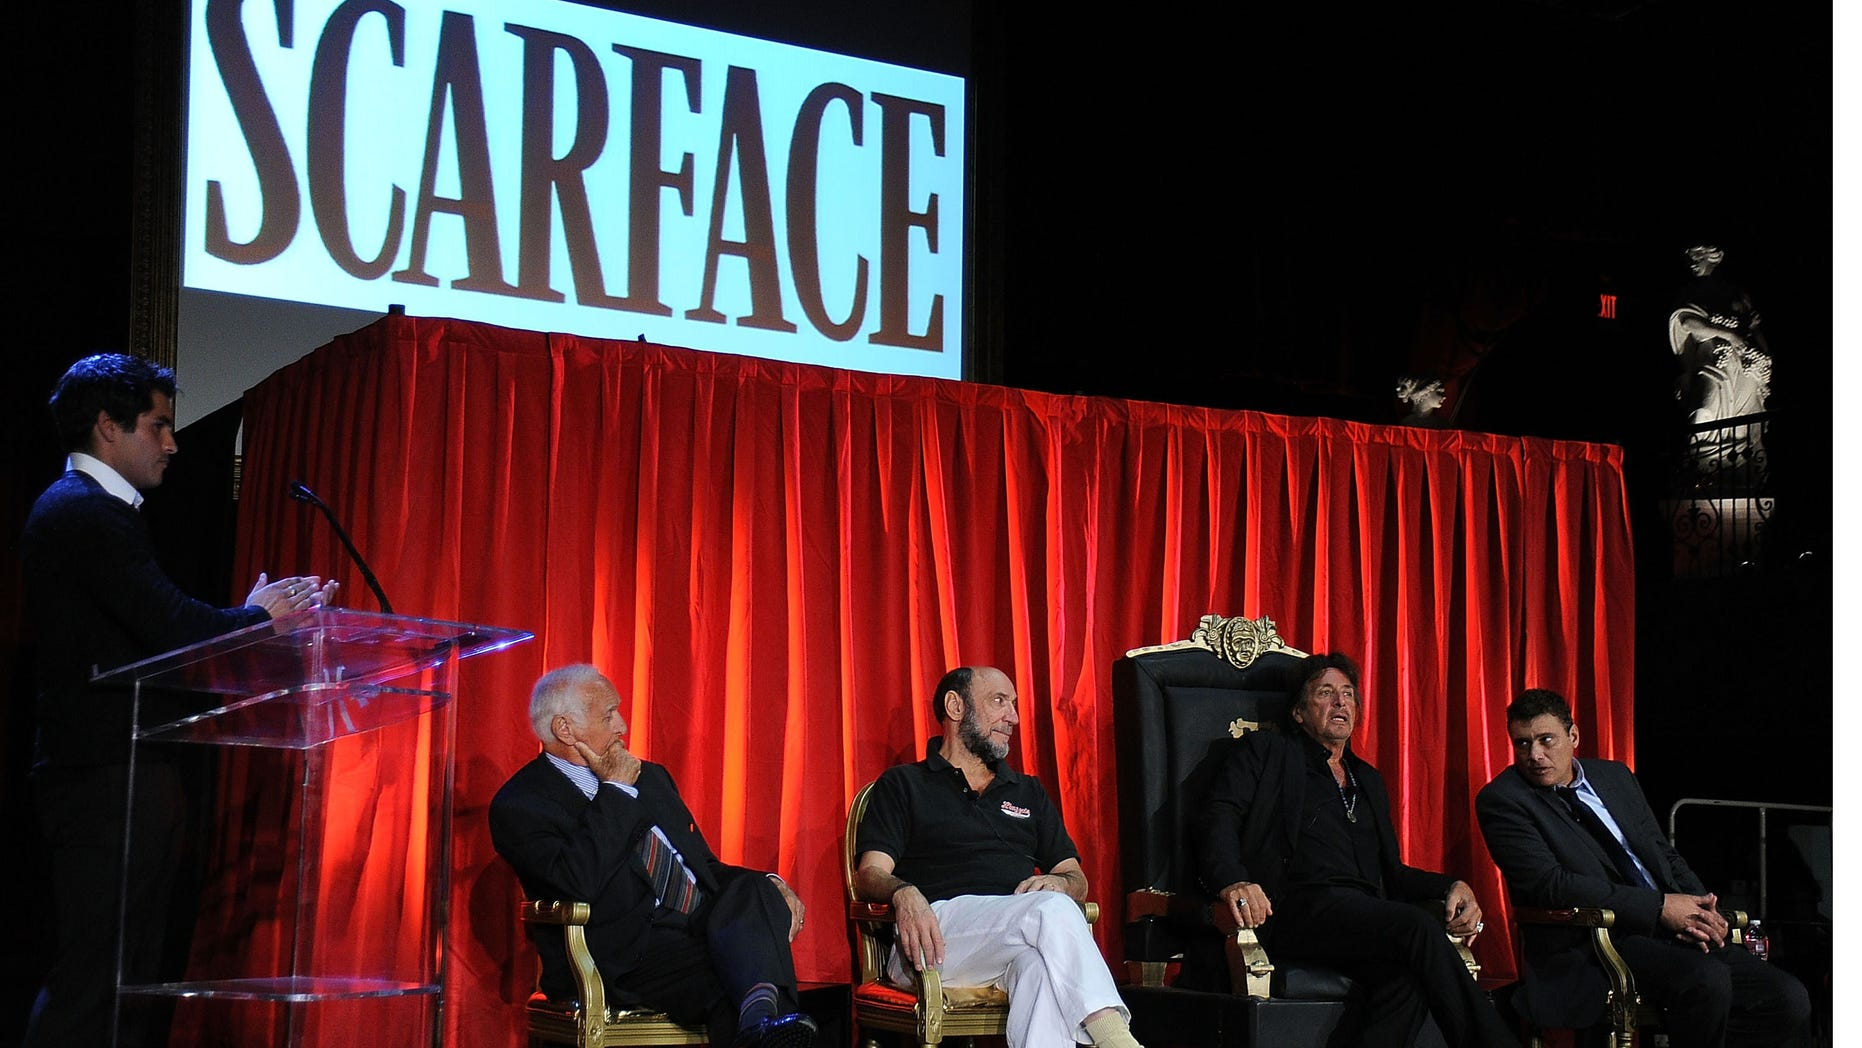 """Aug. 23, 2012:  Actors Robert Loggia, F. Murray Abraham, Al Pacino, Steven Bauera on stage at the release of """"Scarface"""" On Blu-ray at the Belasco Theatre in Los Angeles, Calif."""